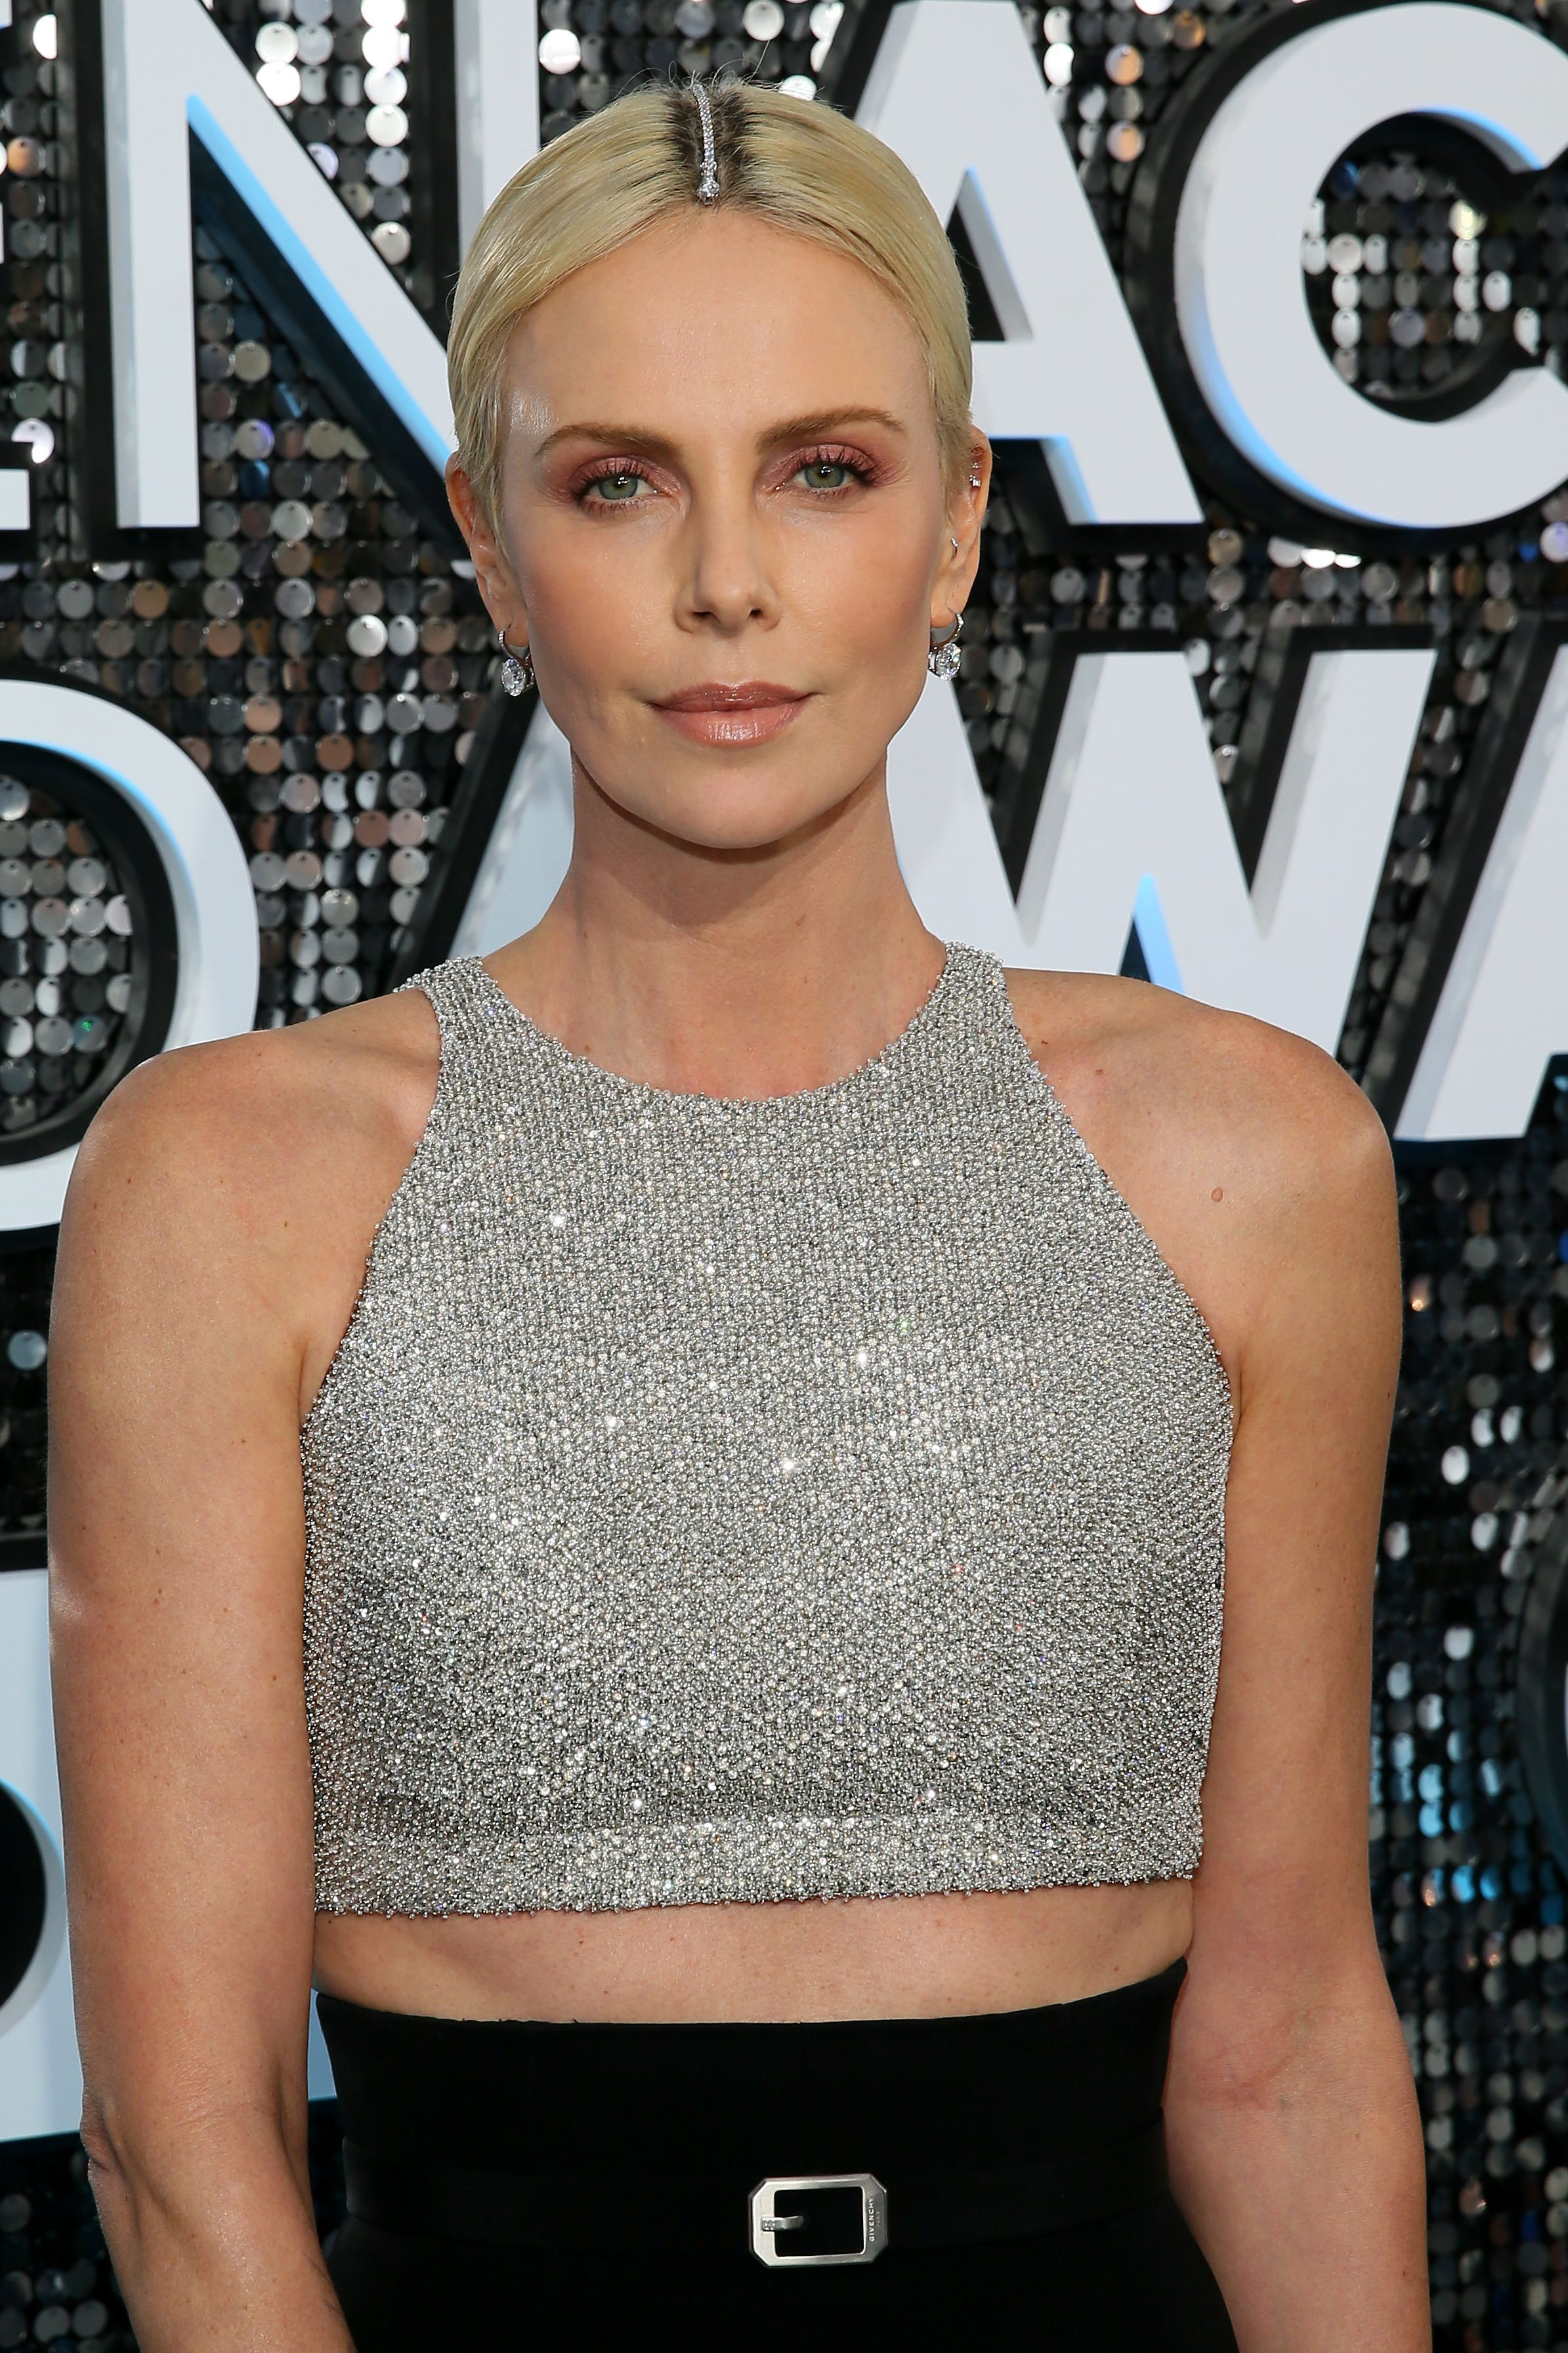 Charlize Theron wore Tiffany diamonds in her hair to hide her roots